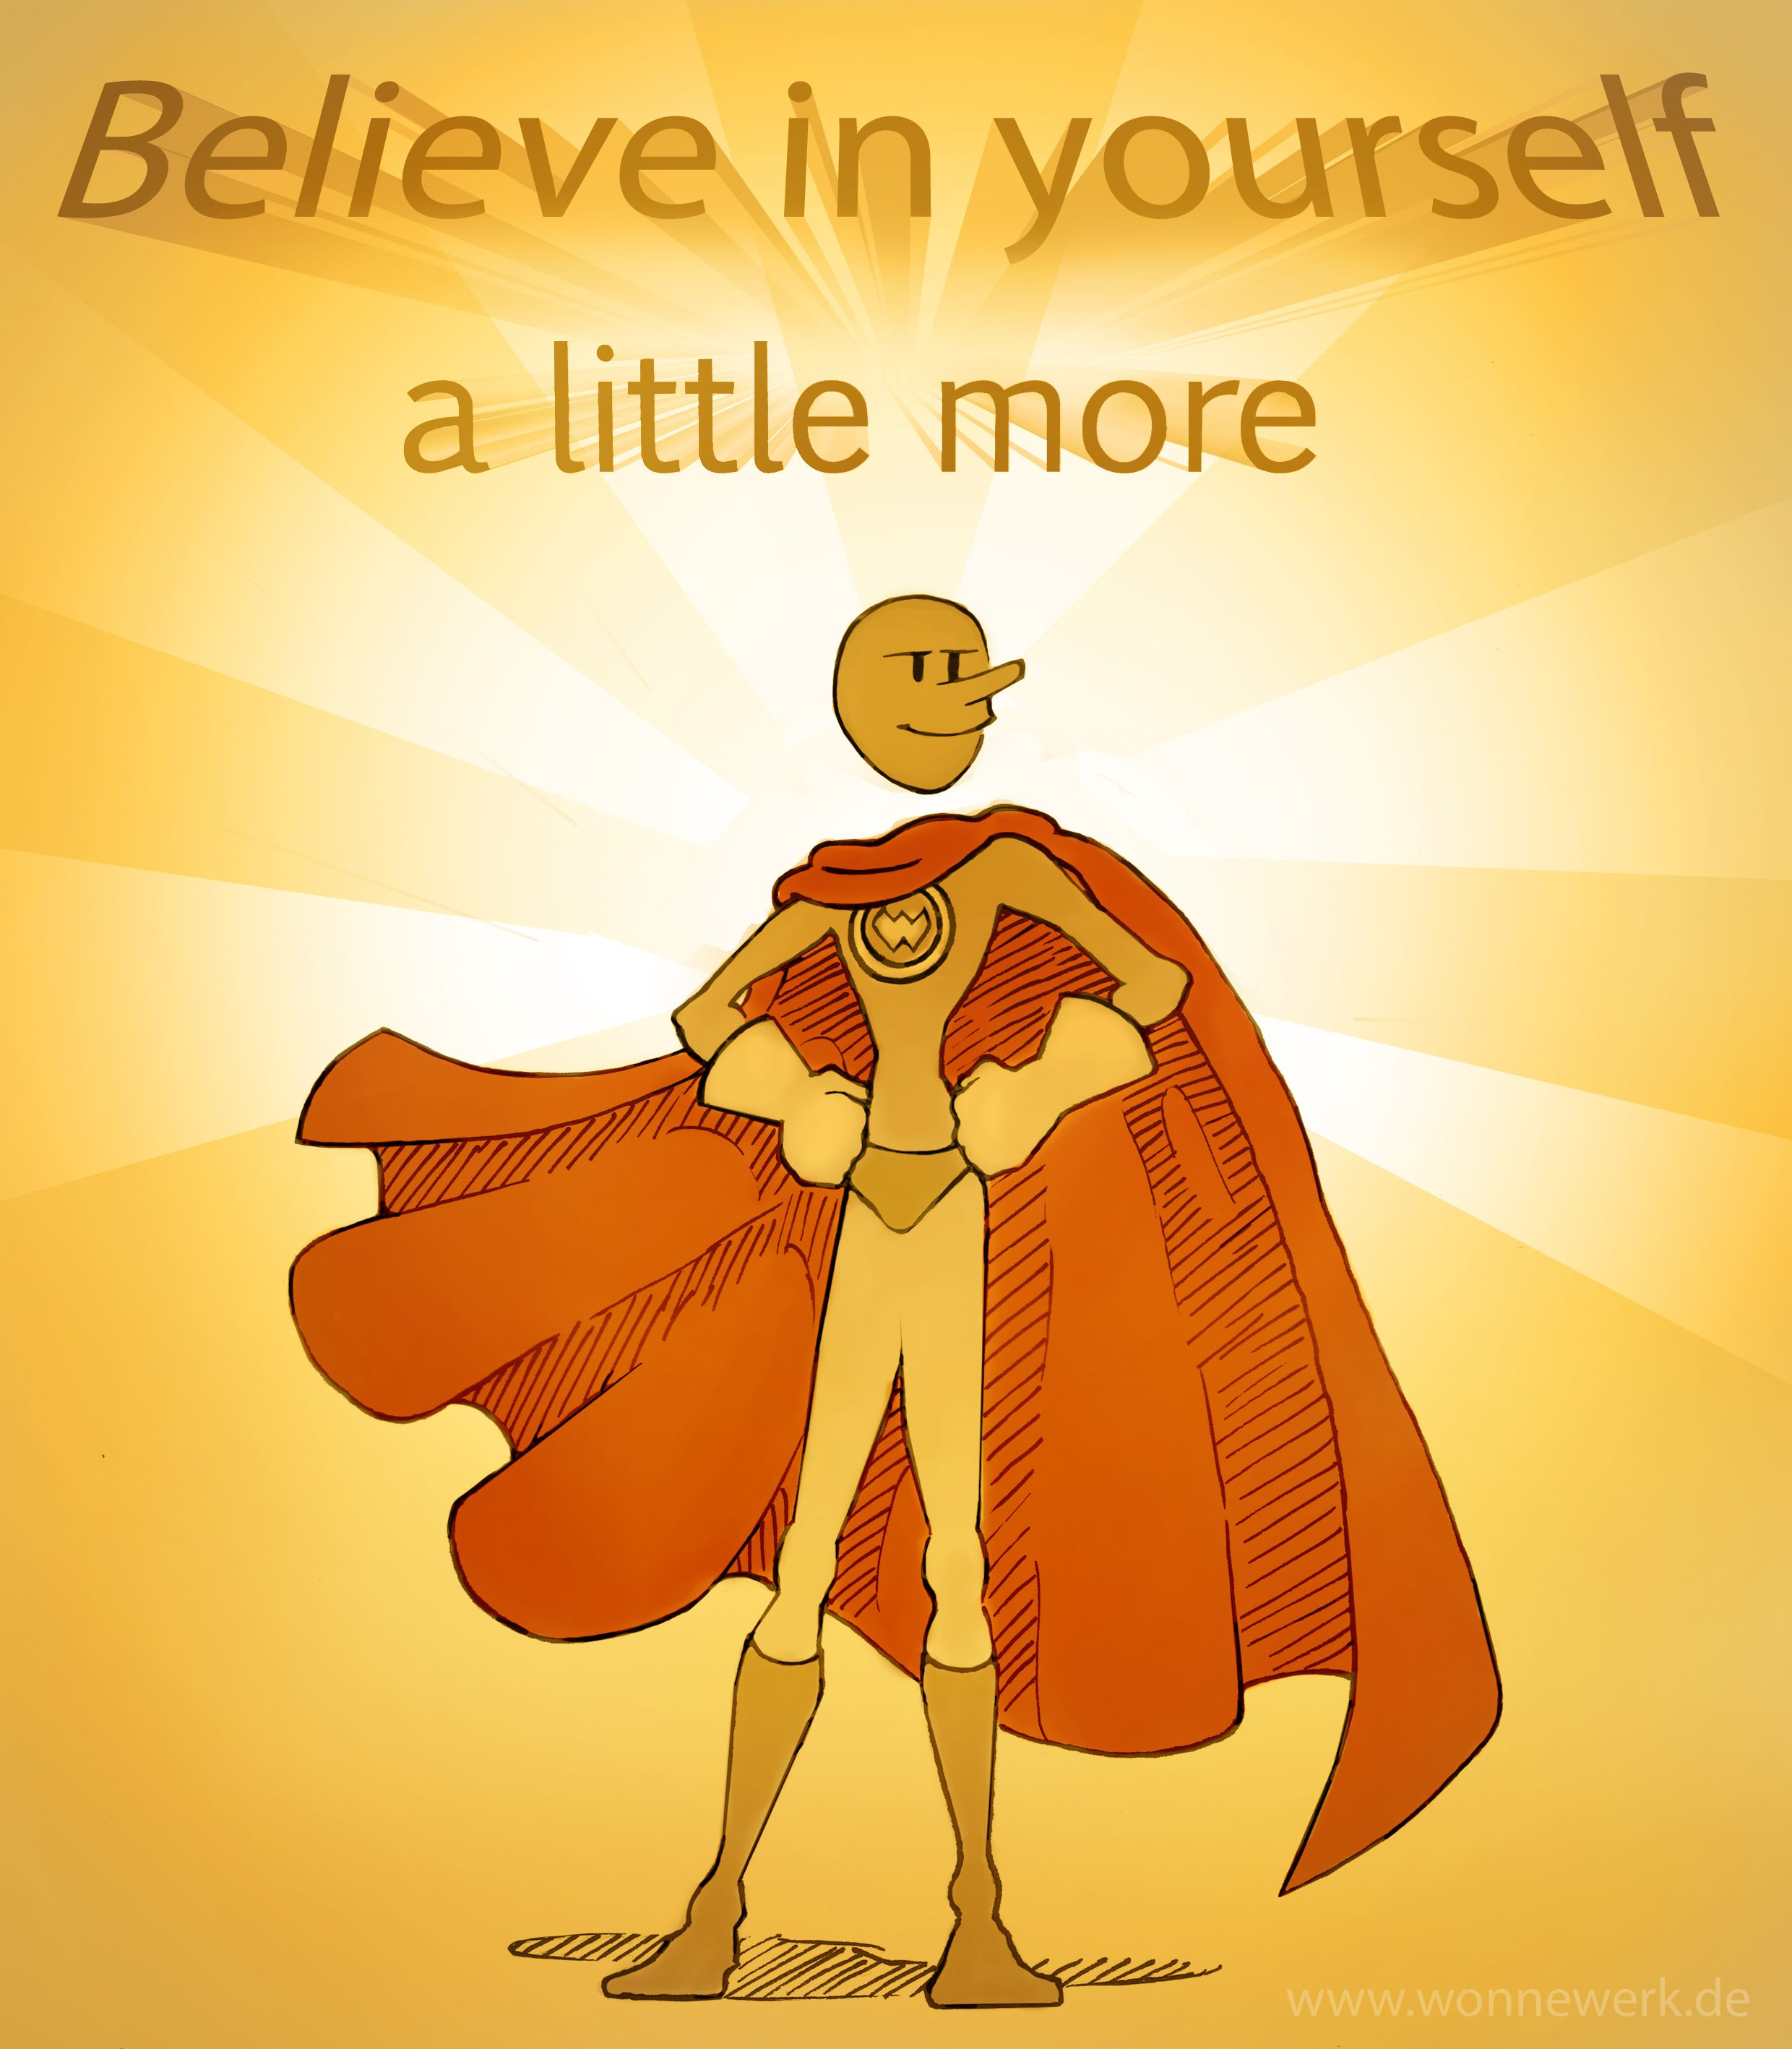 Believe in yourself a little more ! Glaub an dich